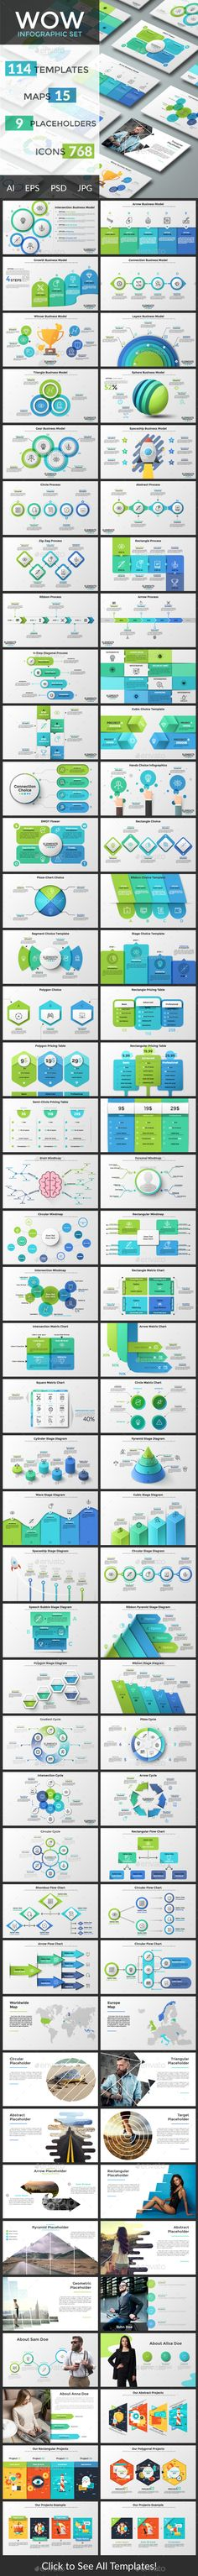 Wow Infographic Collection Templates PSD, Vector EPS, AI Illustrator. Download